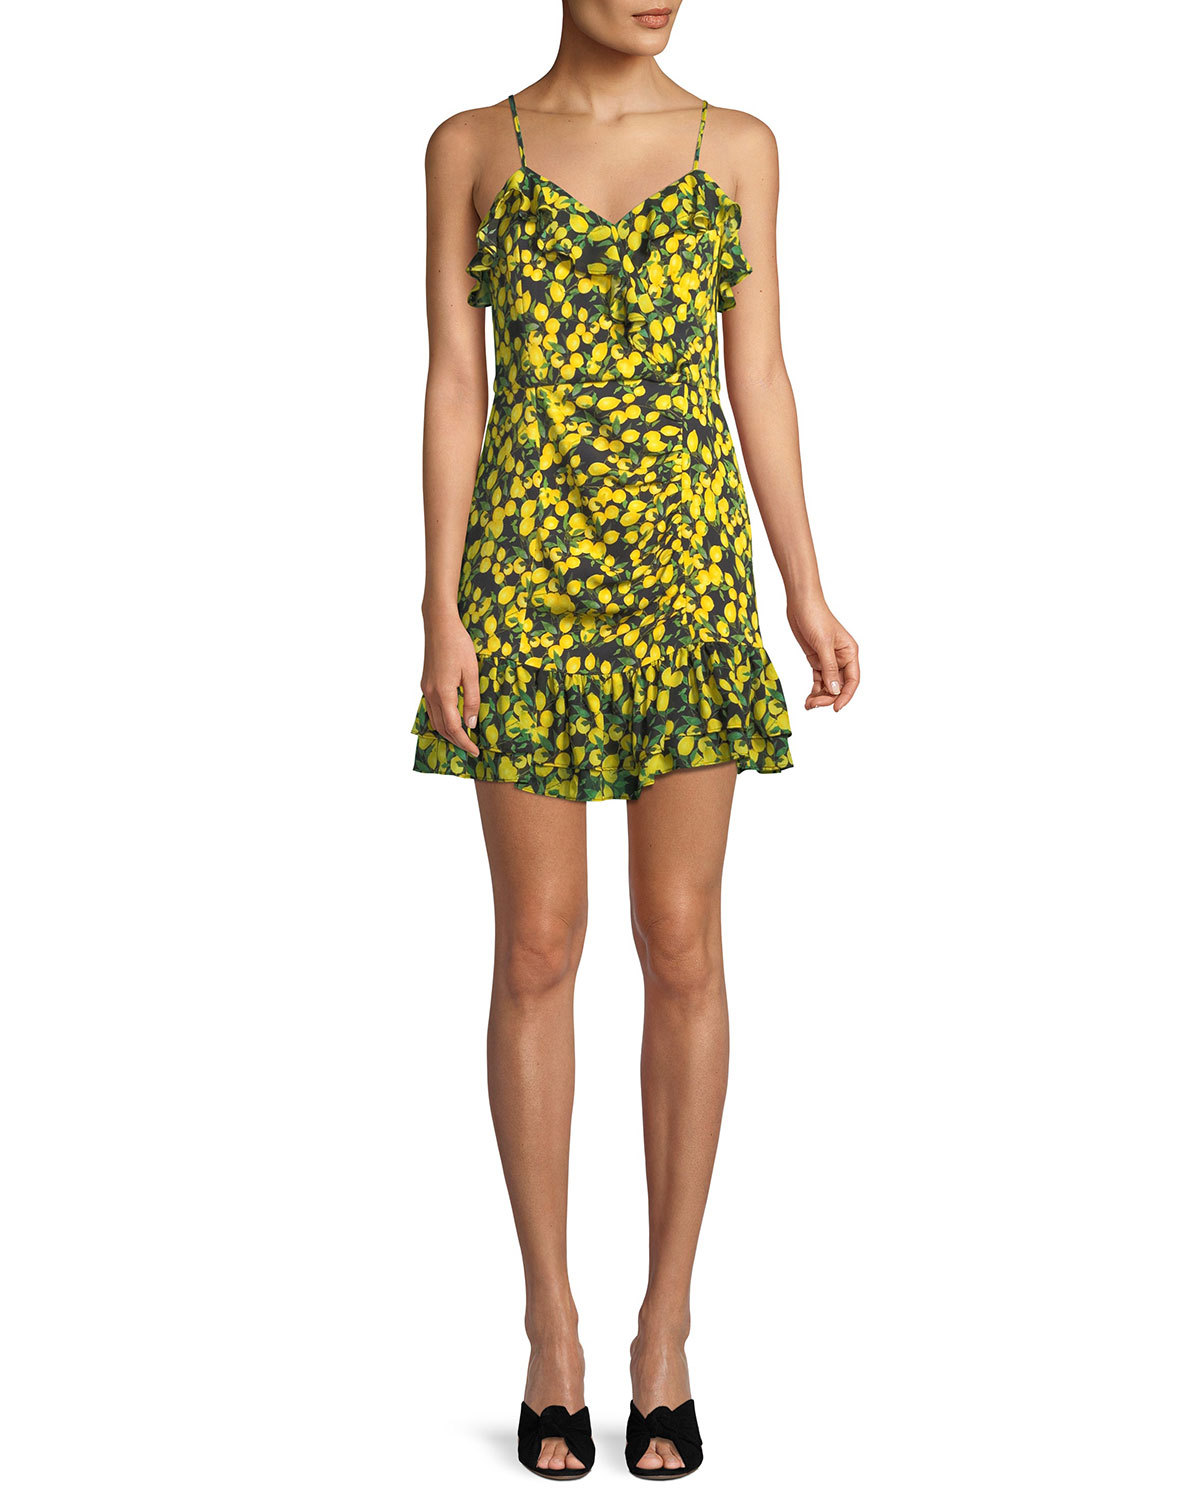 34854d8779c3 Parker Erica Lemons Ruffle Mini Dress | Neiman Marcus